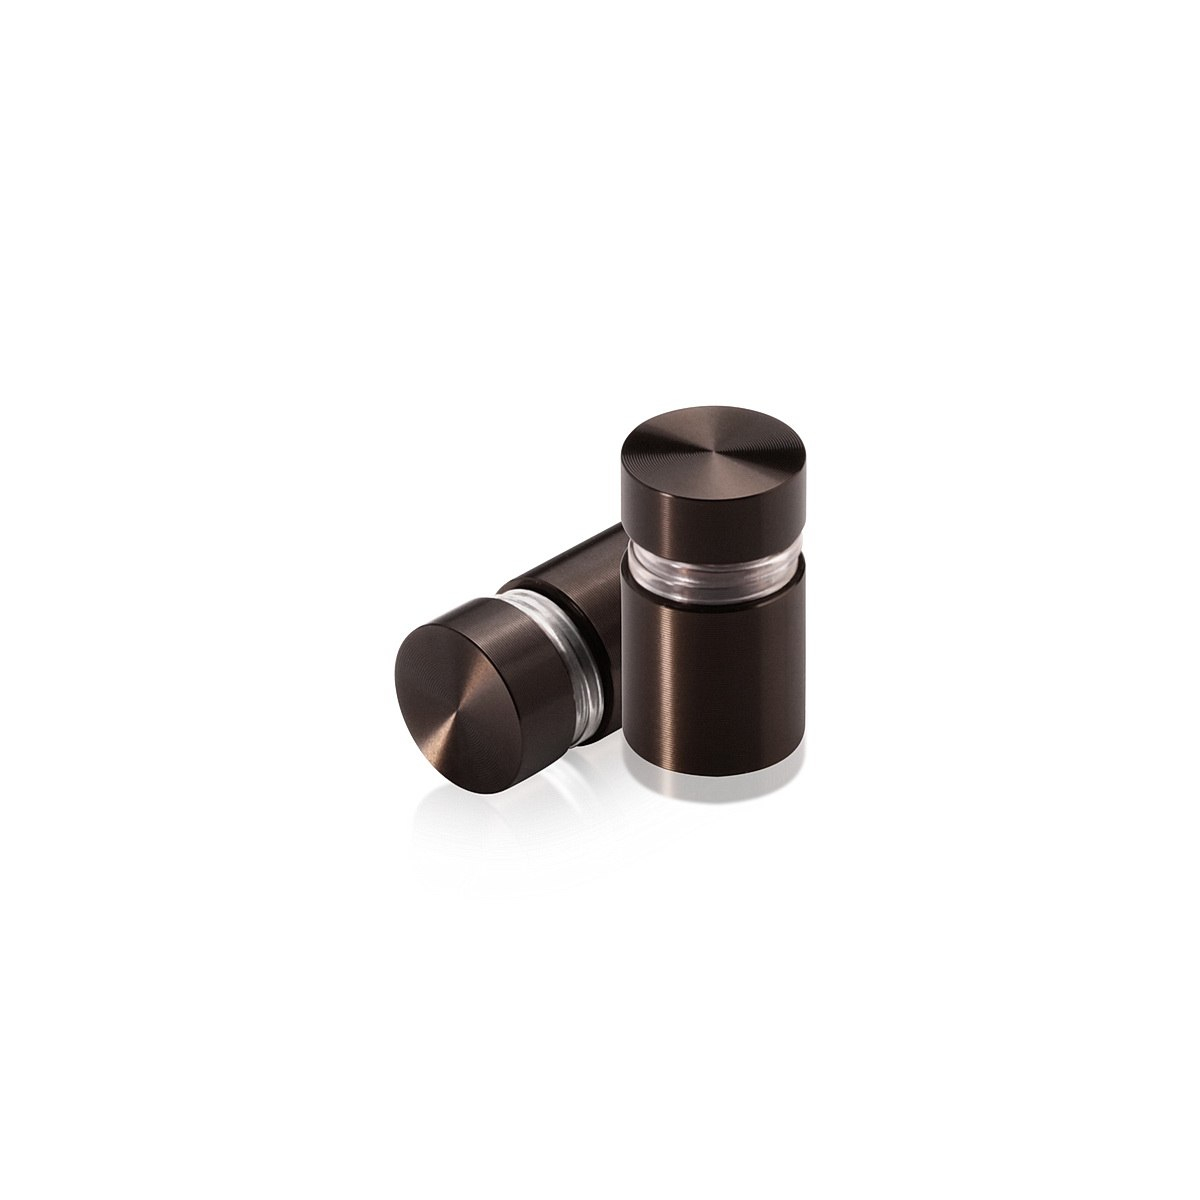 1/2'' Diameter X 1/2'' Barrel Length, Aluminum Flat Head Standoffs, Bronze Anodized Finish Easy Fasten Standoff (For Inside / Outside use) Tamper Proof Standoff